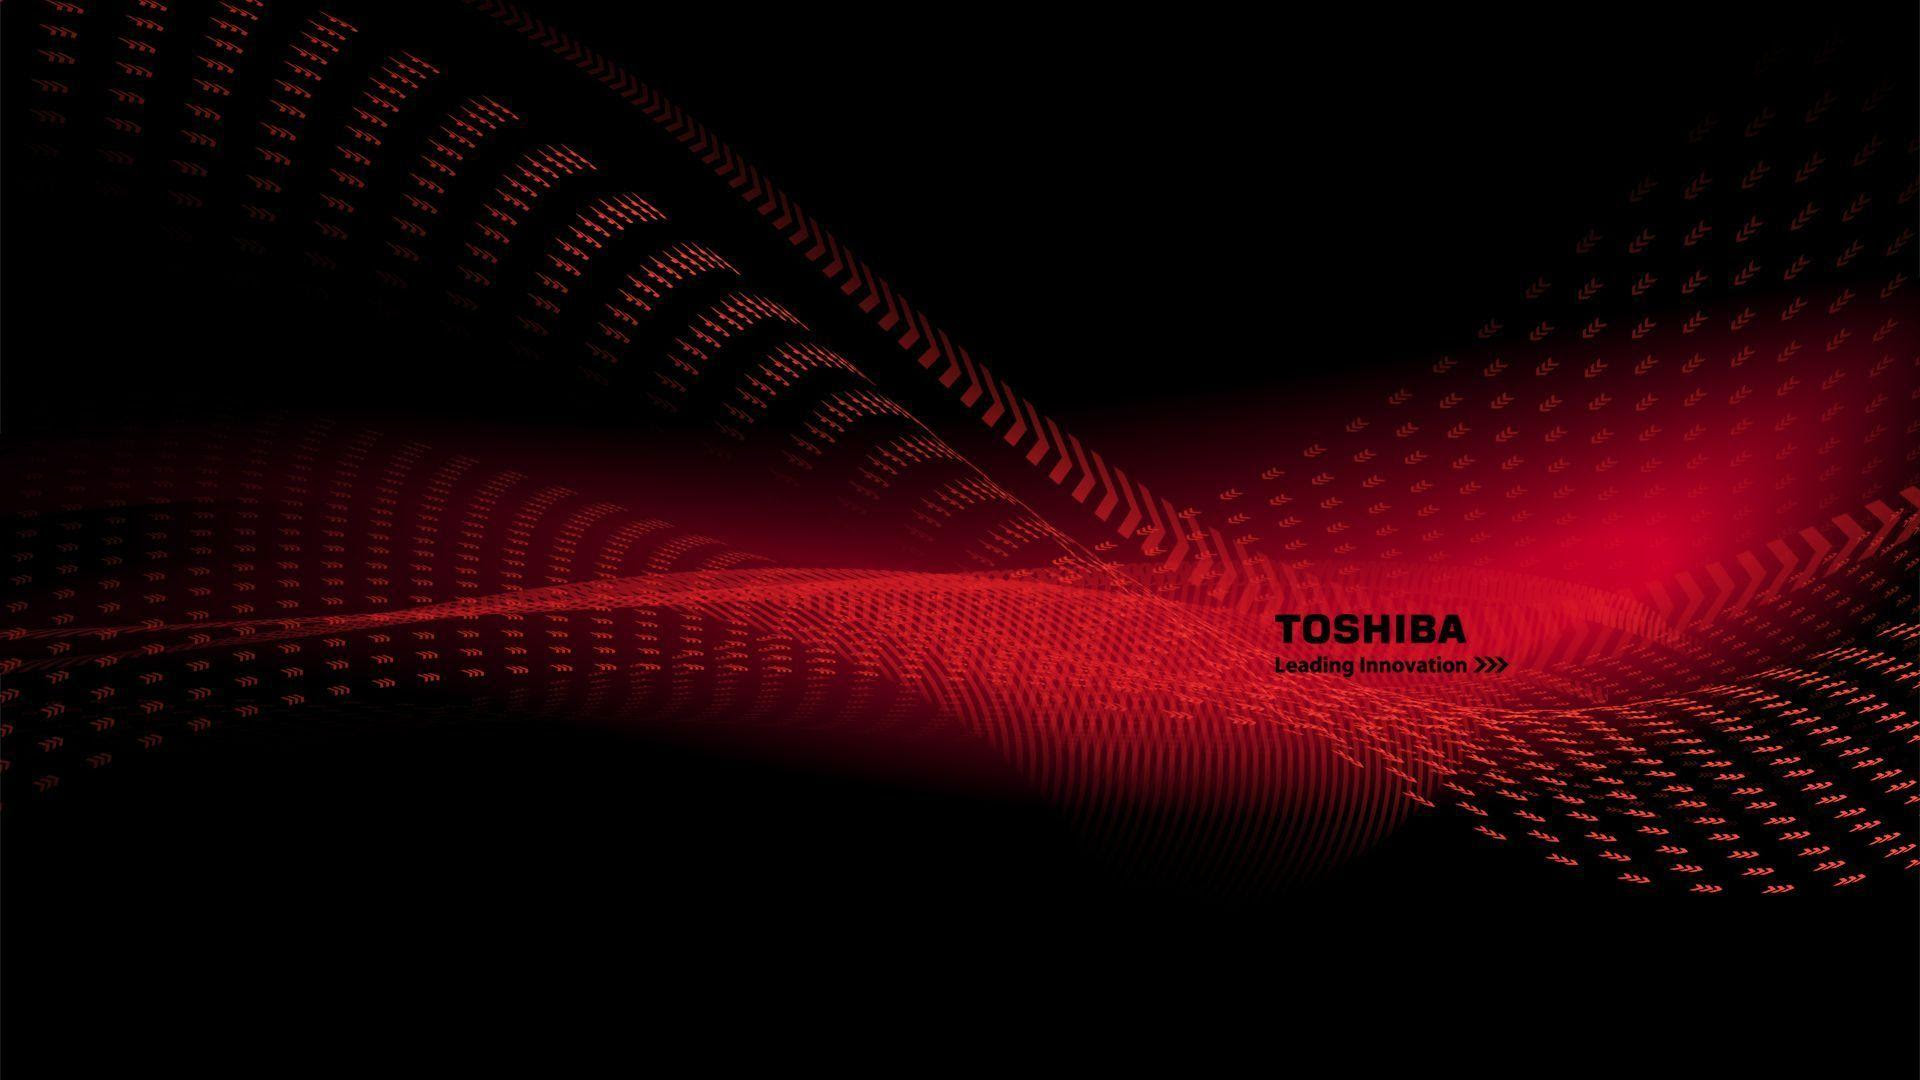 Daftar Wallpapers For Laptop Toshiba